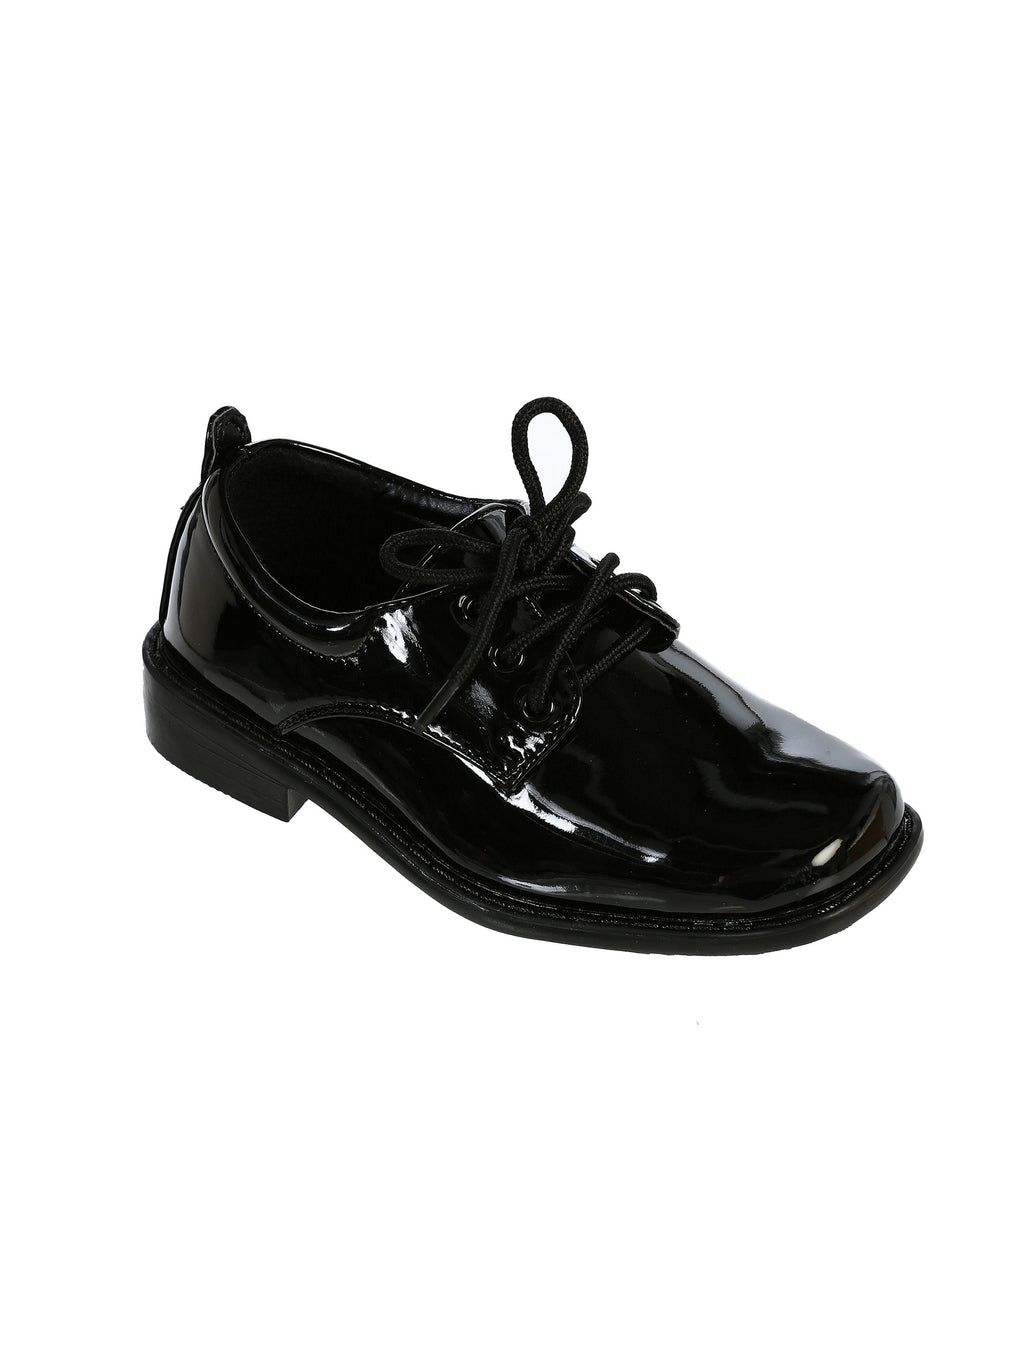 TipTop Patent Shiny Black Boys Dress Oxford Shoes